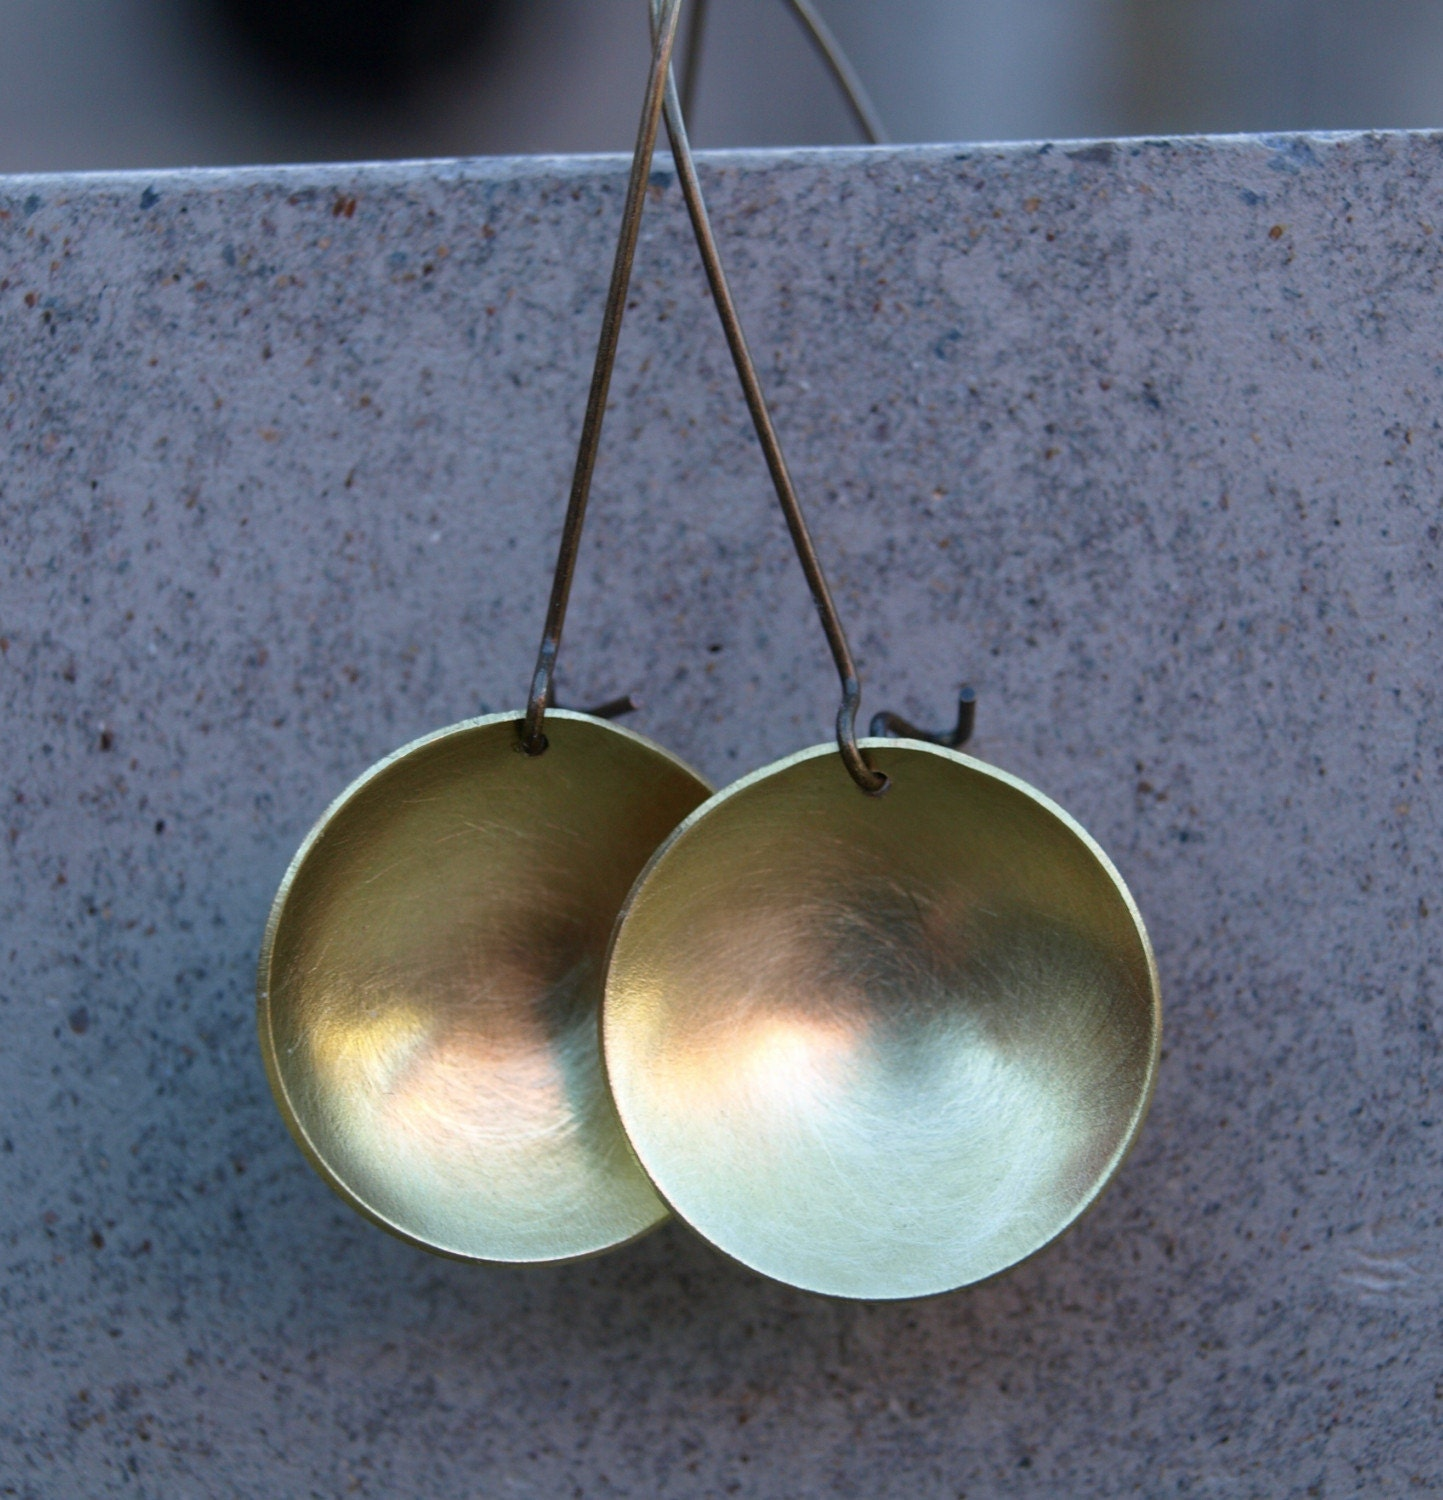 Domed brass discs